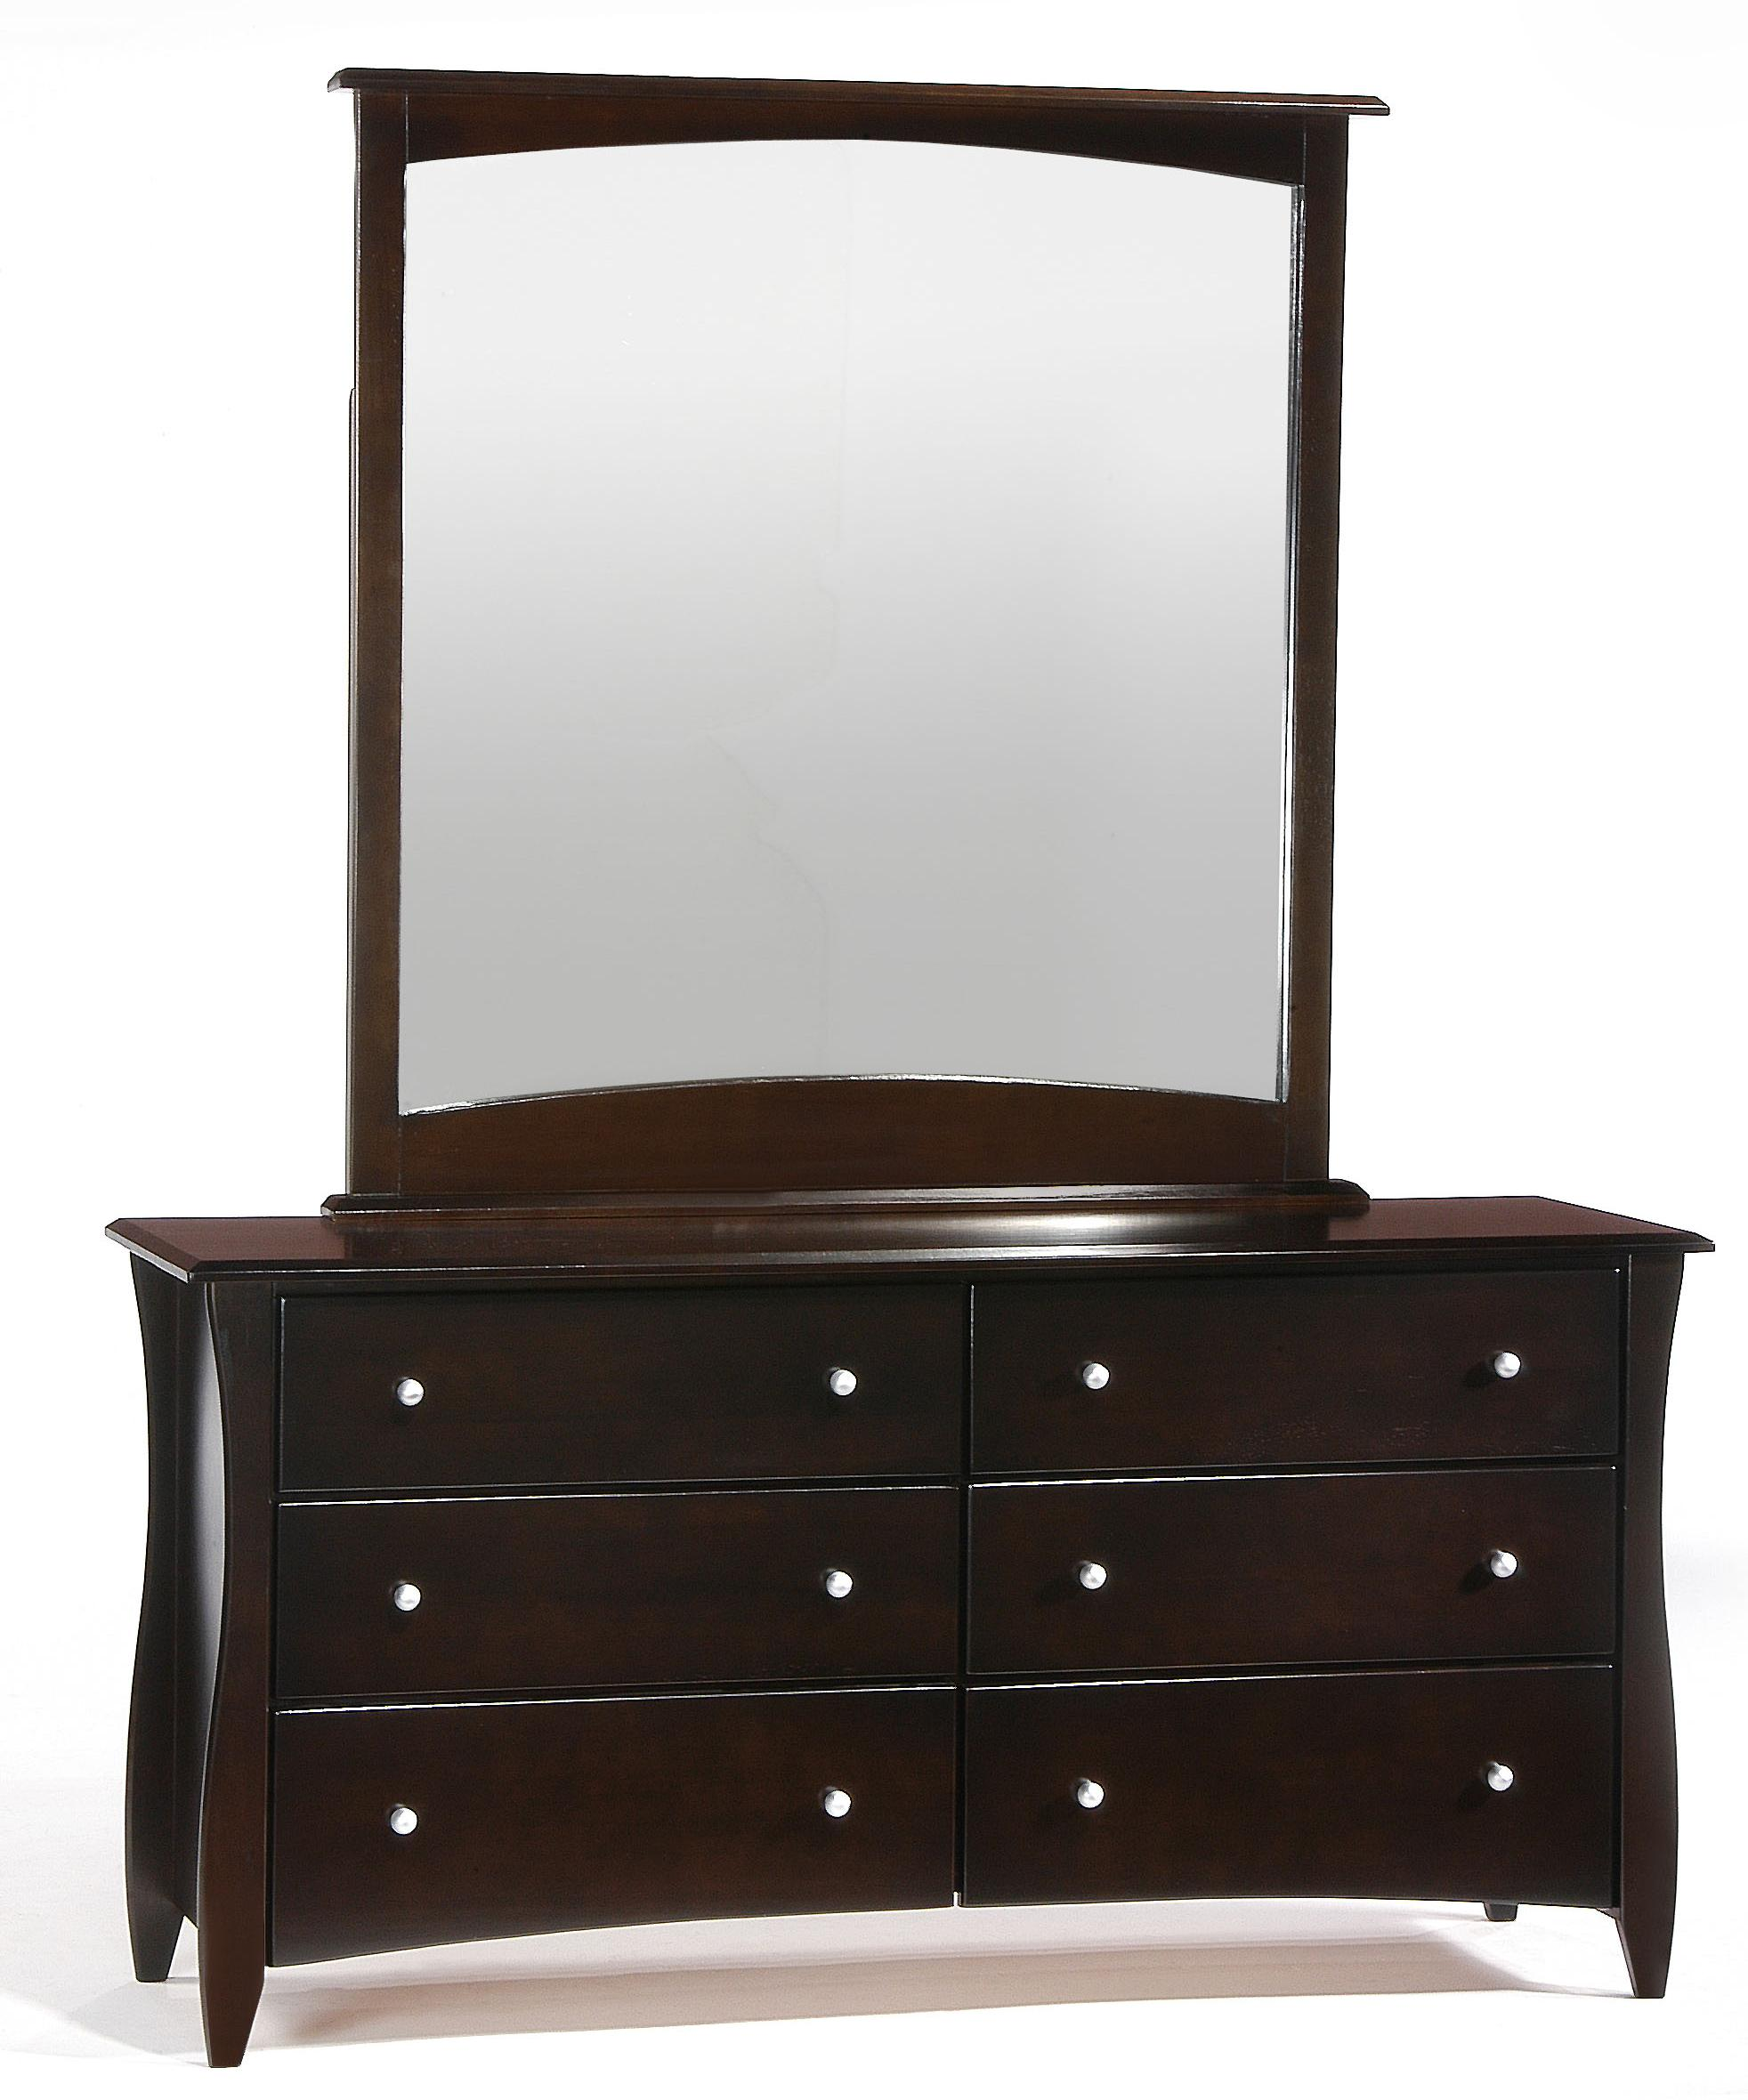 Spice Clove Dresser and Mirror Combo by Night & Day Furniture at Furniture and ApplianceMart